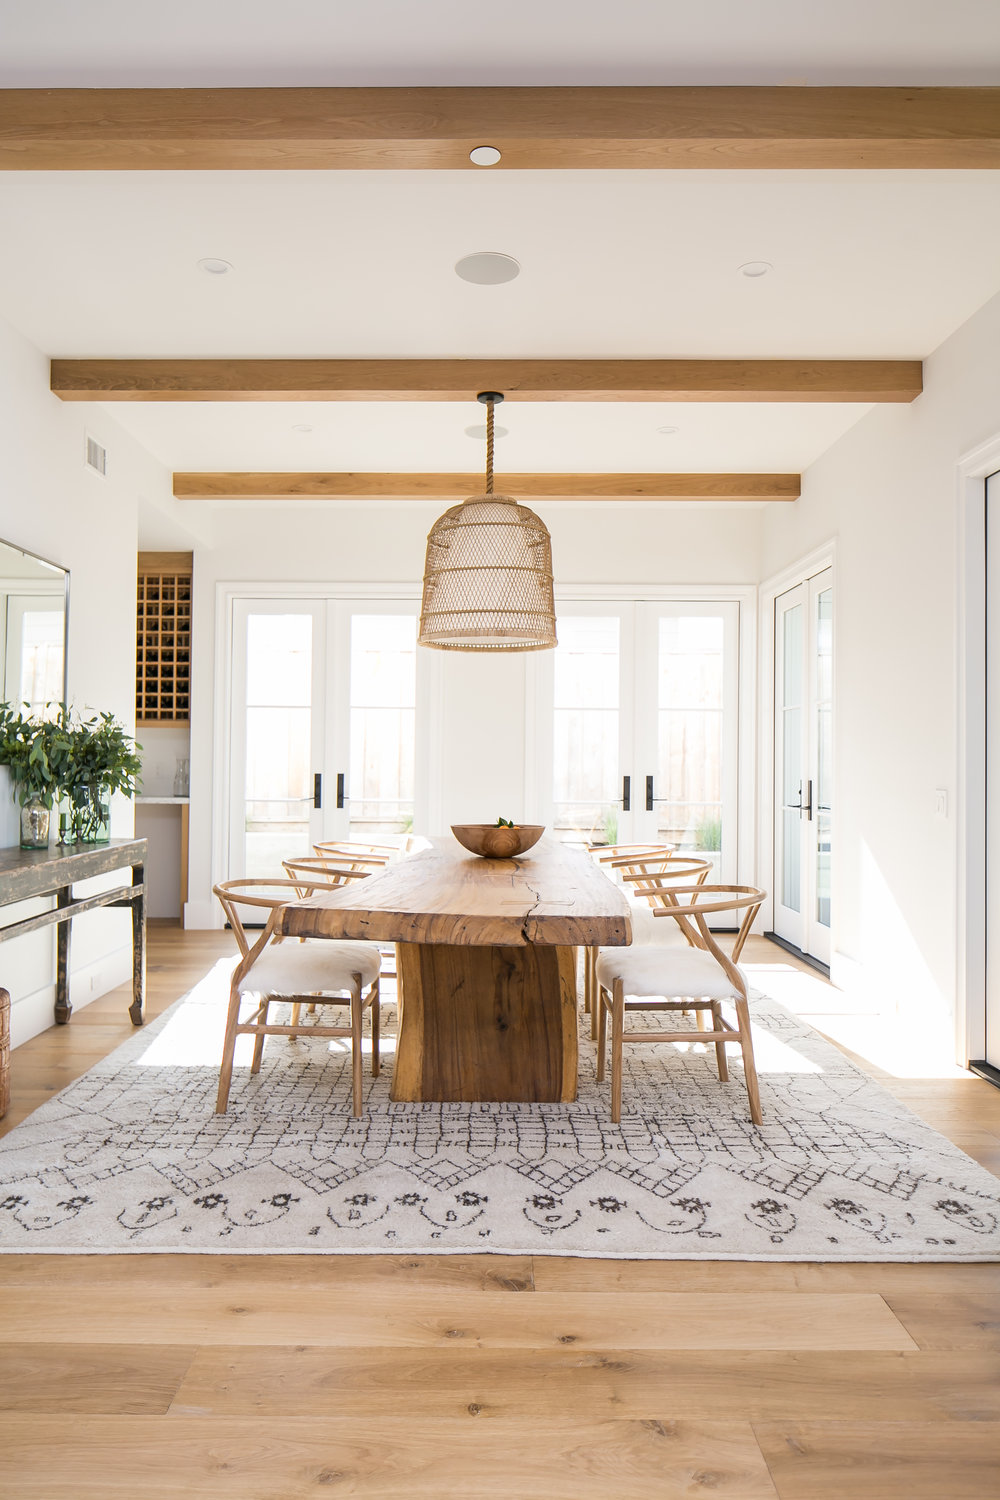 Design by  Eric Aust Architect / Furniture Staging by  Meredith Baer / Home accessories by  Clayton Builders